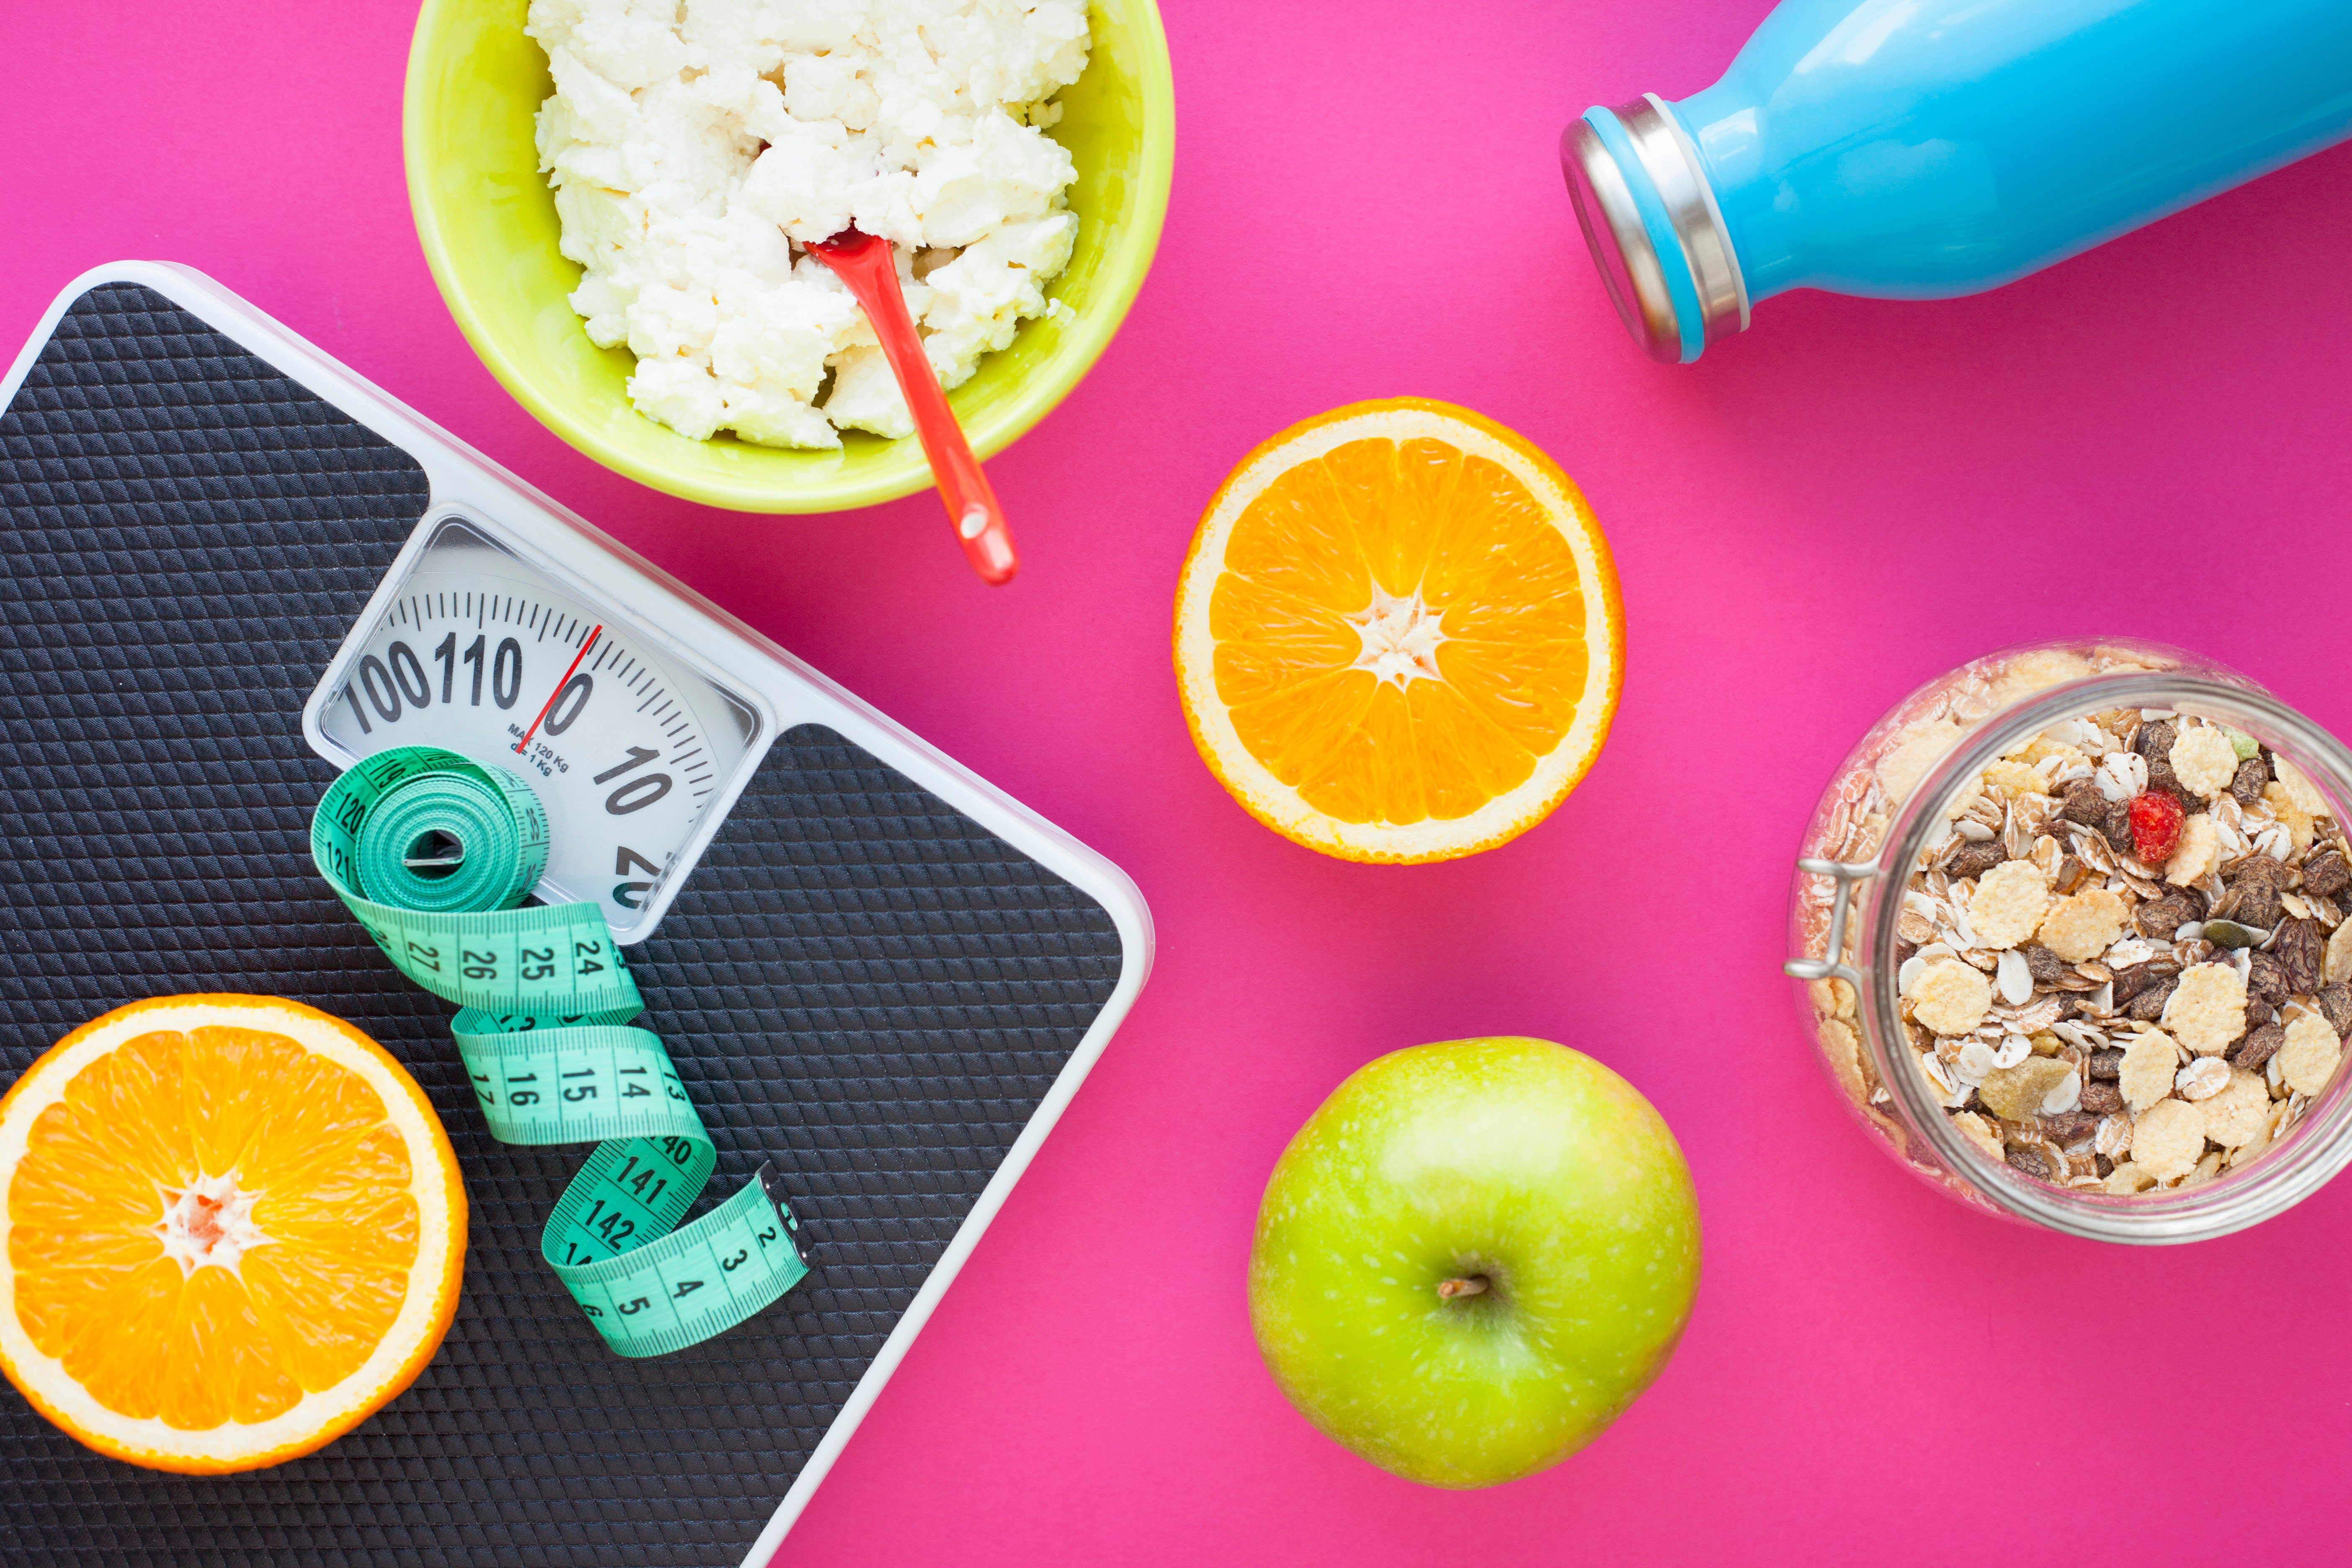 Fruits, curd, measuring tape, water and muesli on the pink background. Weight loss, diet controlled healthy food concept background. Top view, close up.